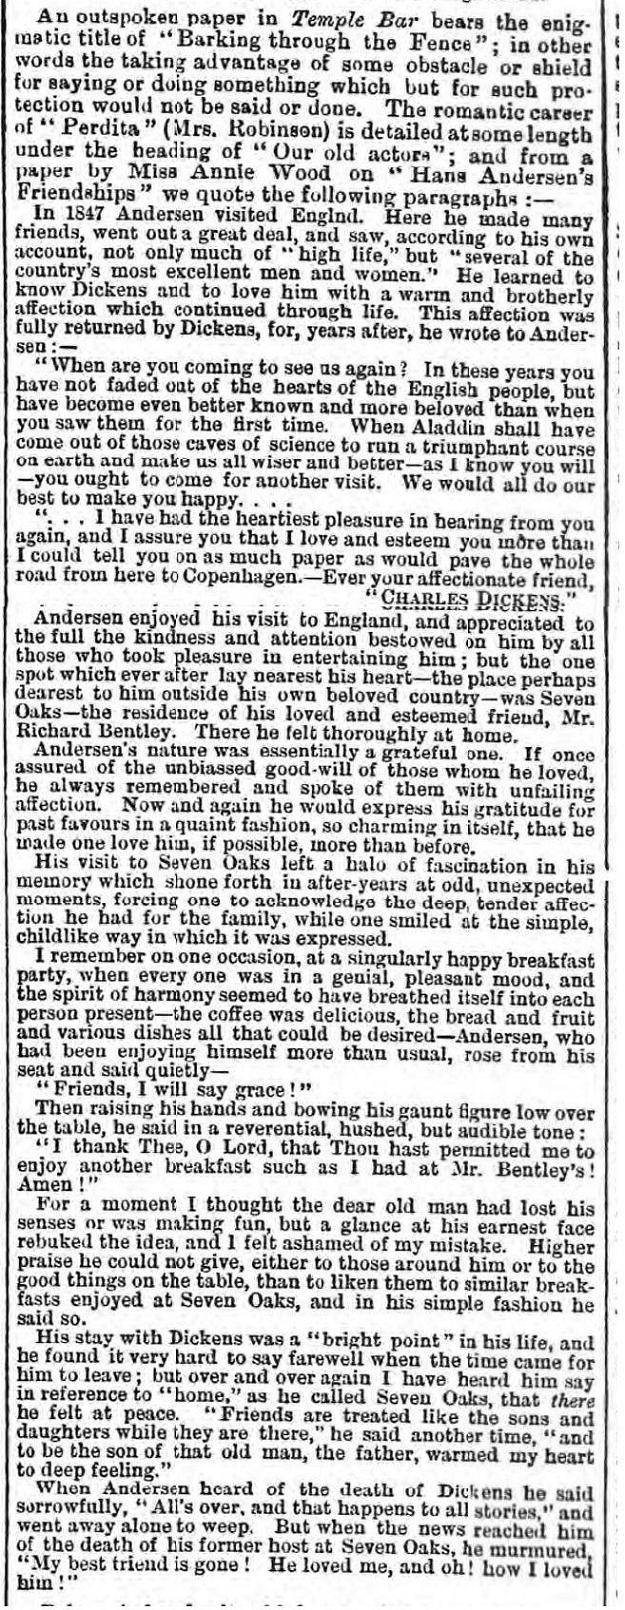 historical newspaper report about hans christian andersen